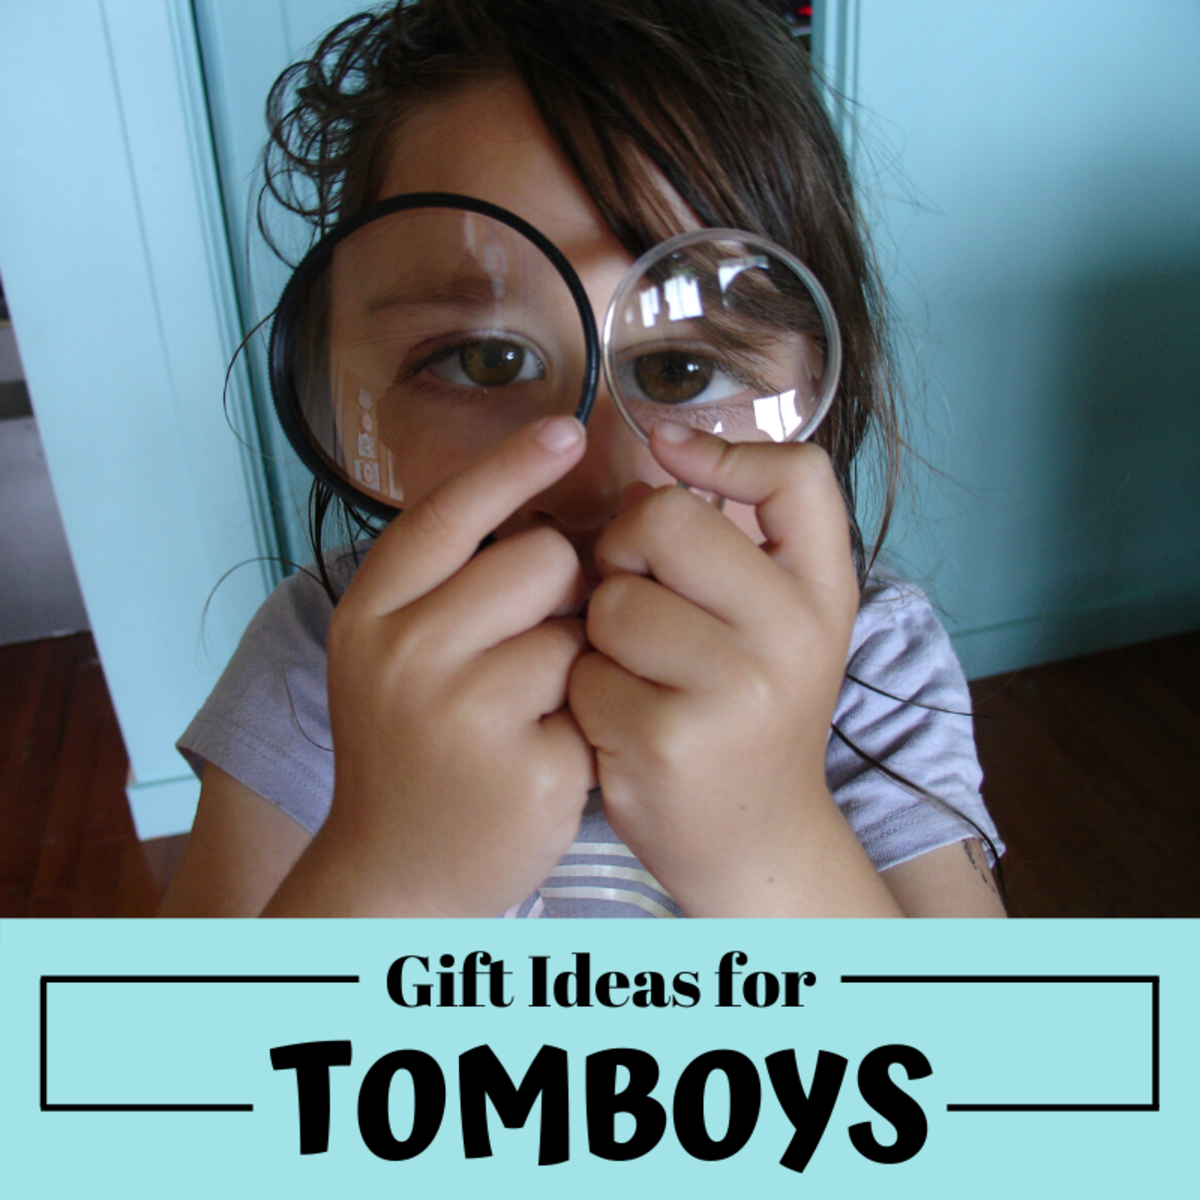 Shopping for a tomboy can be tough. Here are some stellar presents to consider getting for the not-so-girly girl in your life.